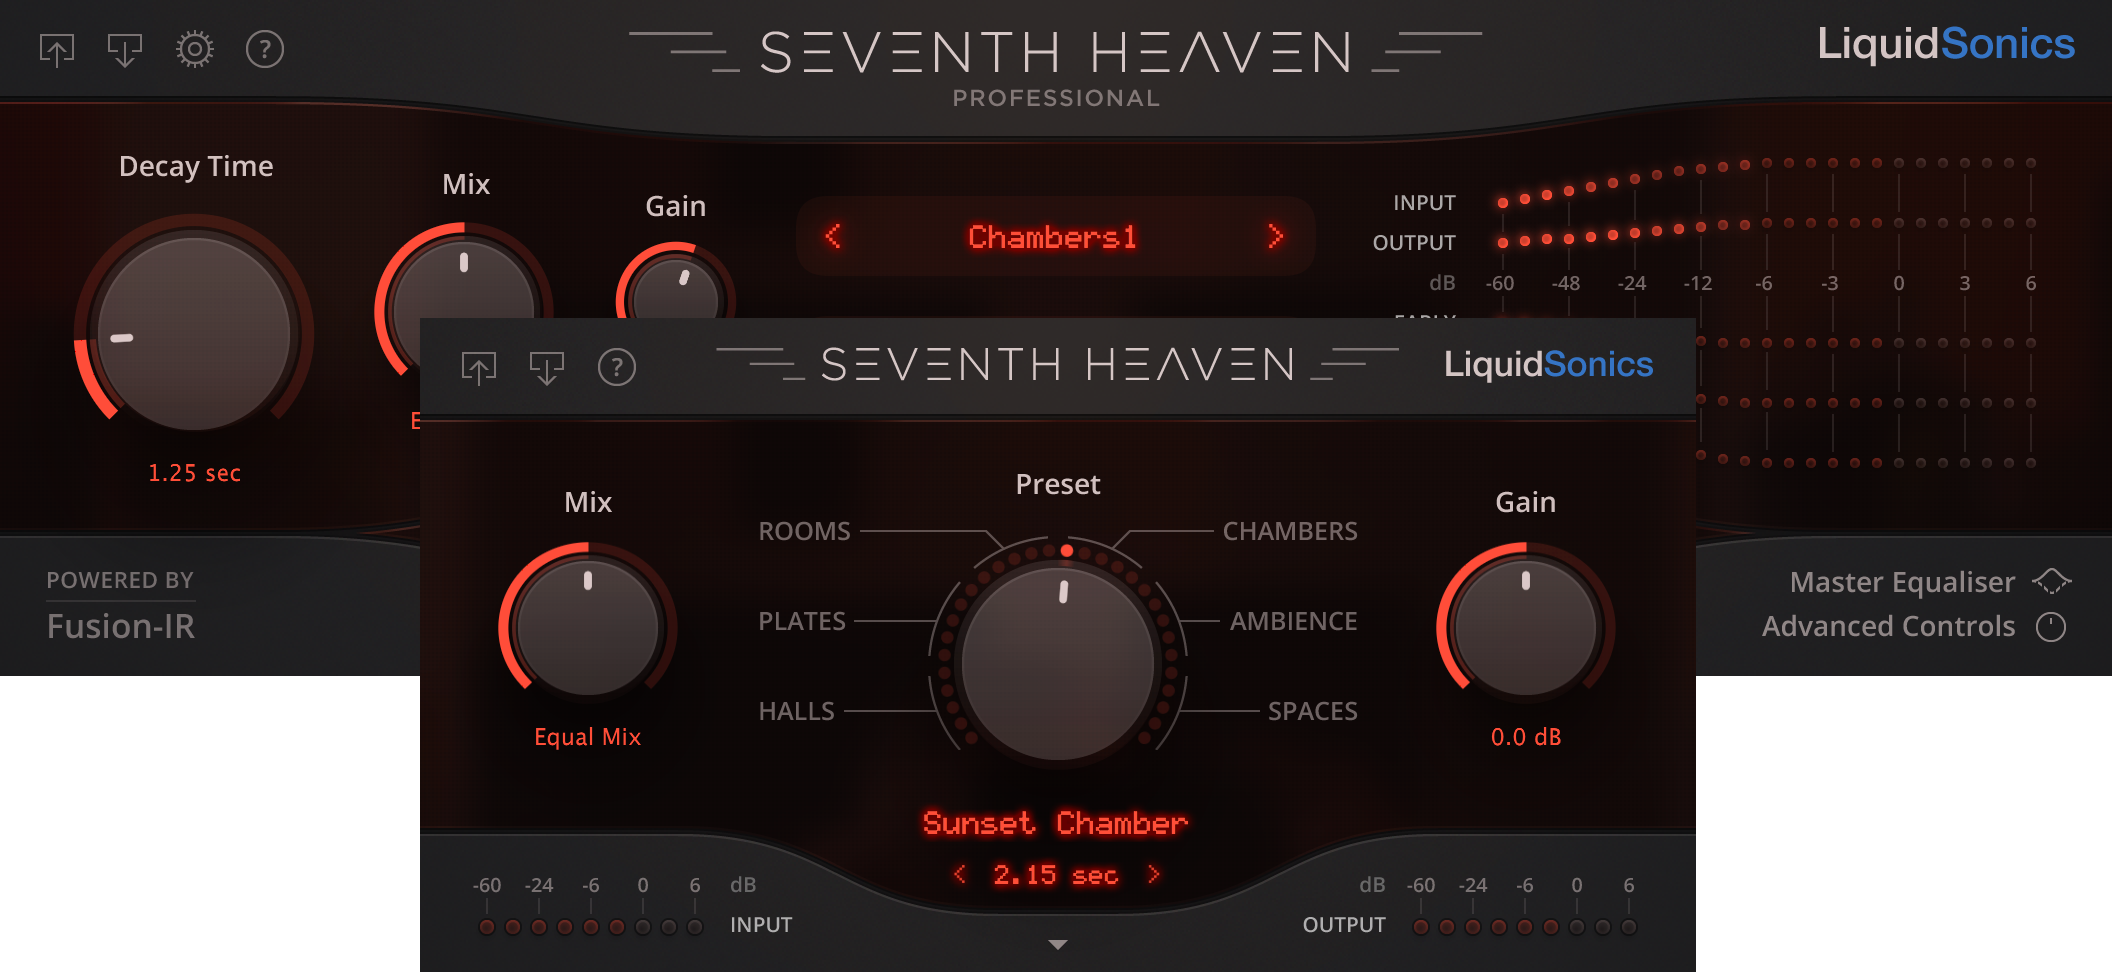 Seventh Heaven Liquidsonics Download The Completepackage Including Schematicfirmware Software With Professional Bundle